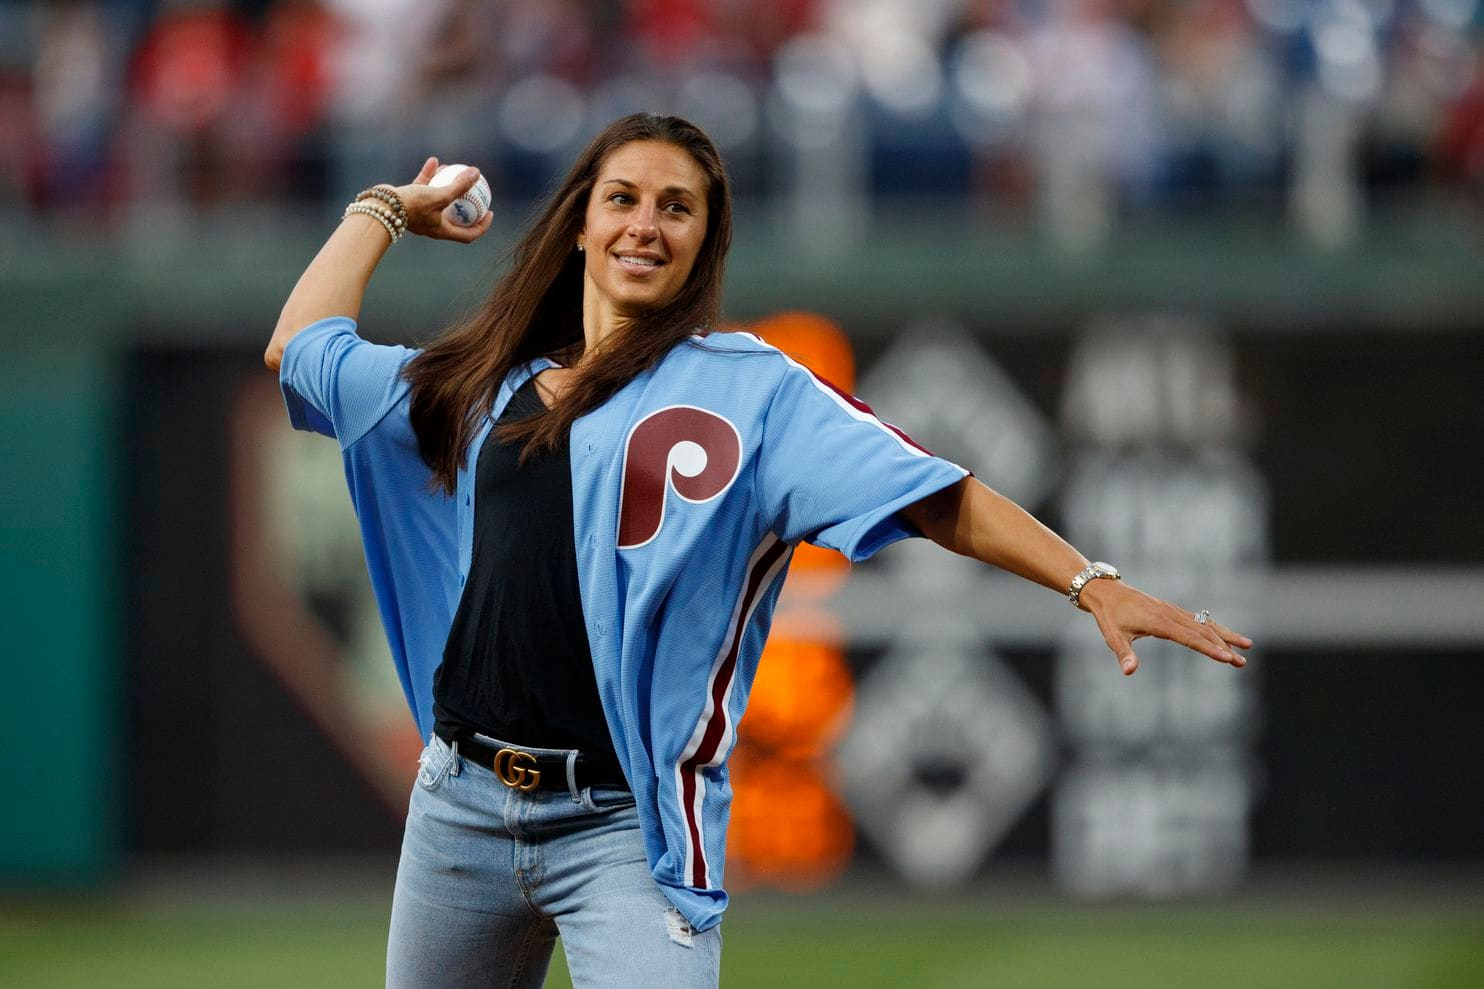 Carli+Lloyd+throwing+the+first+pitch+before+the+Phillies%27+game+against+the+Pirate+on+08%2F27%2F19